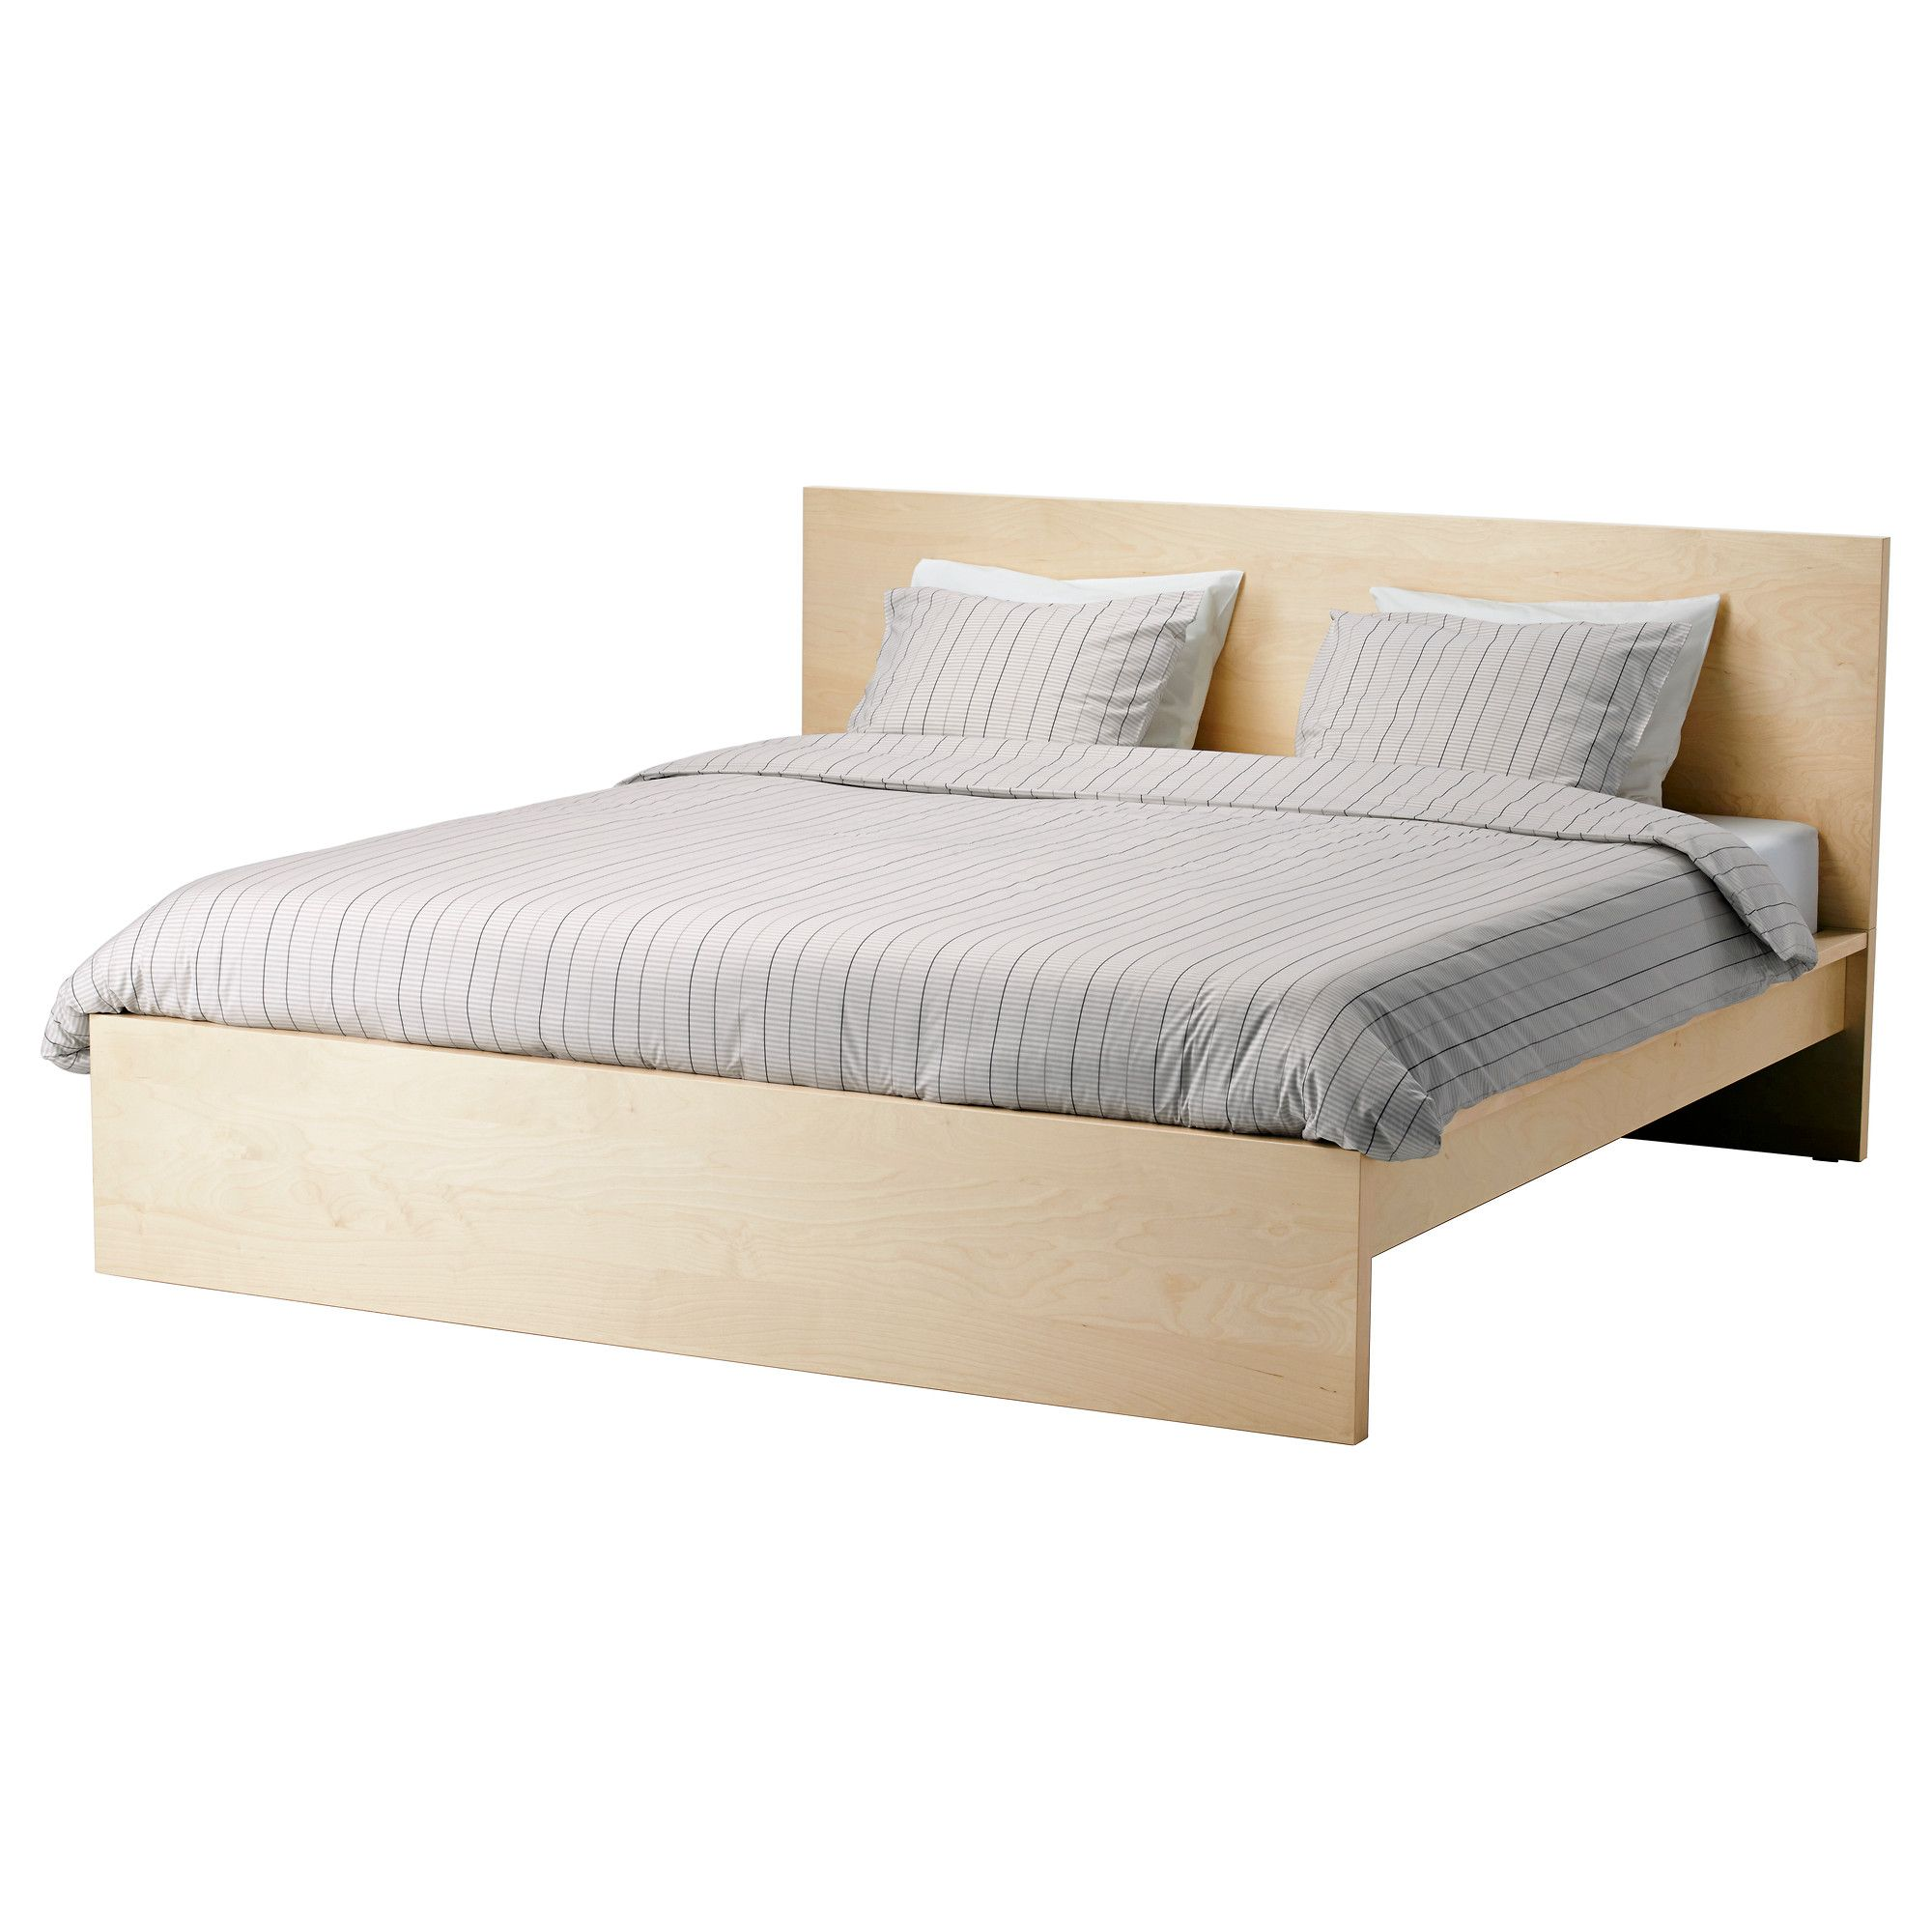 Us Furniture And Home Furnishings Bed Frame Ikea Malm Bed